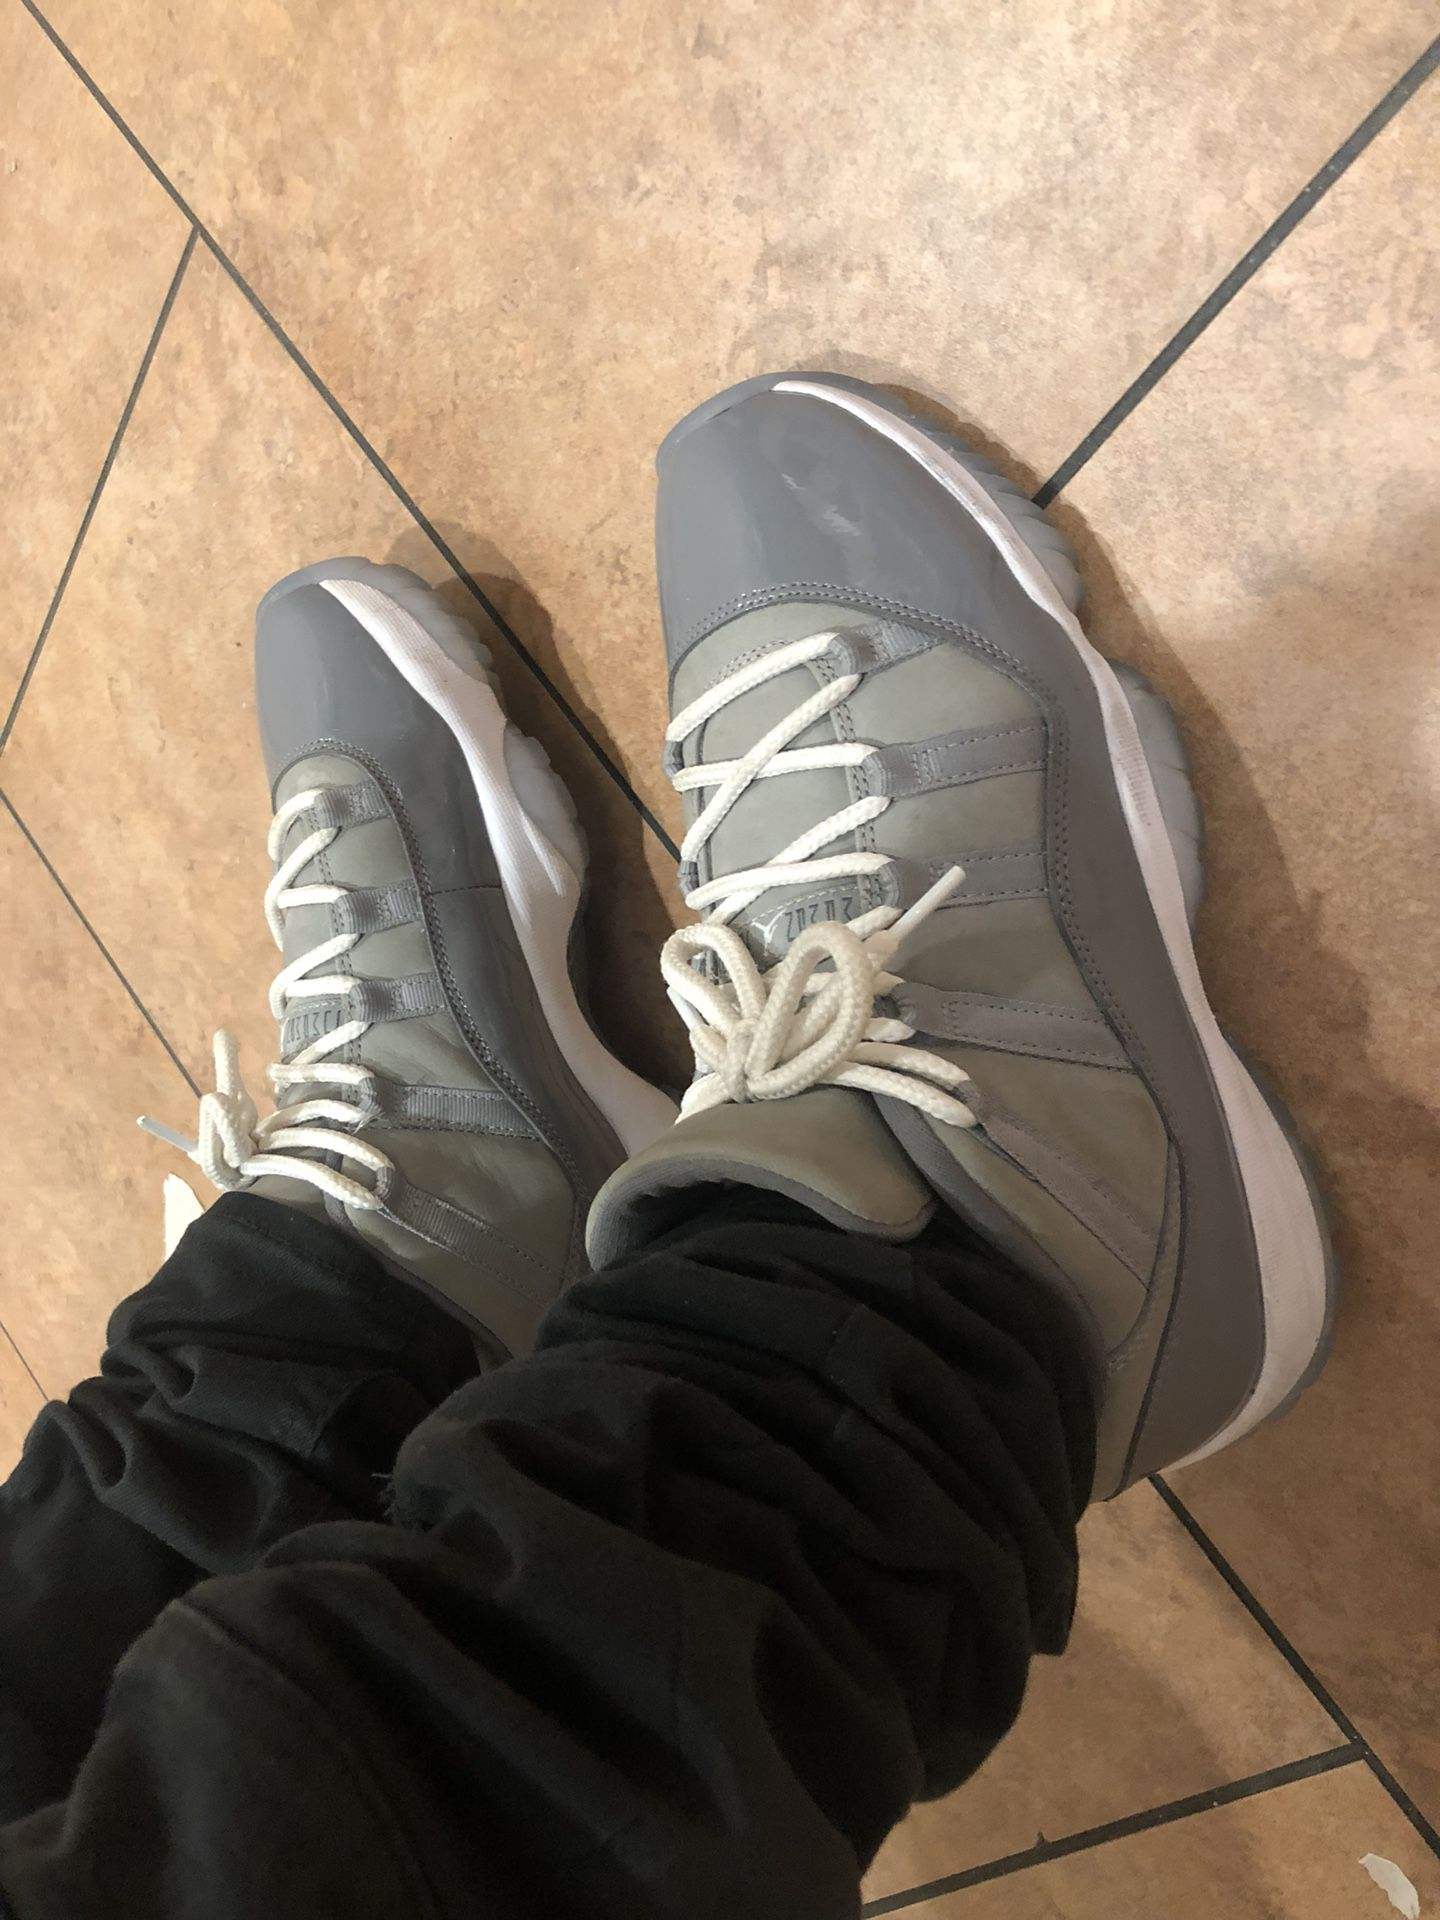 Low cool grey 11s size 9